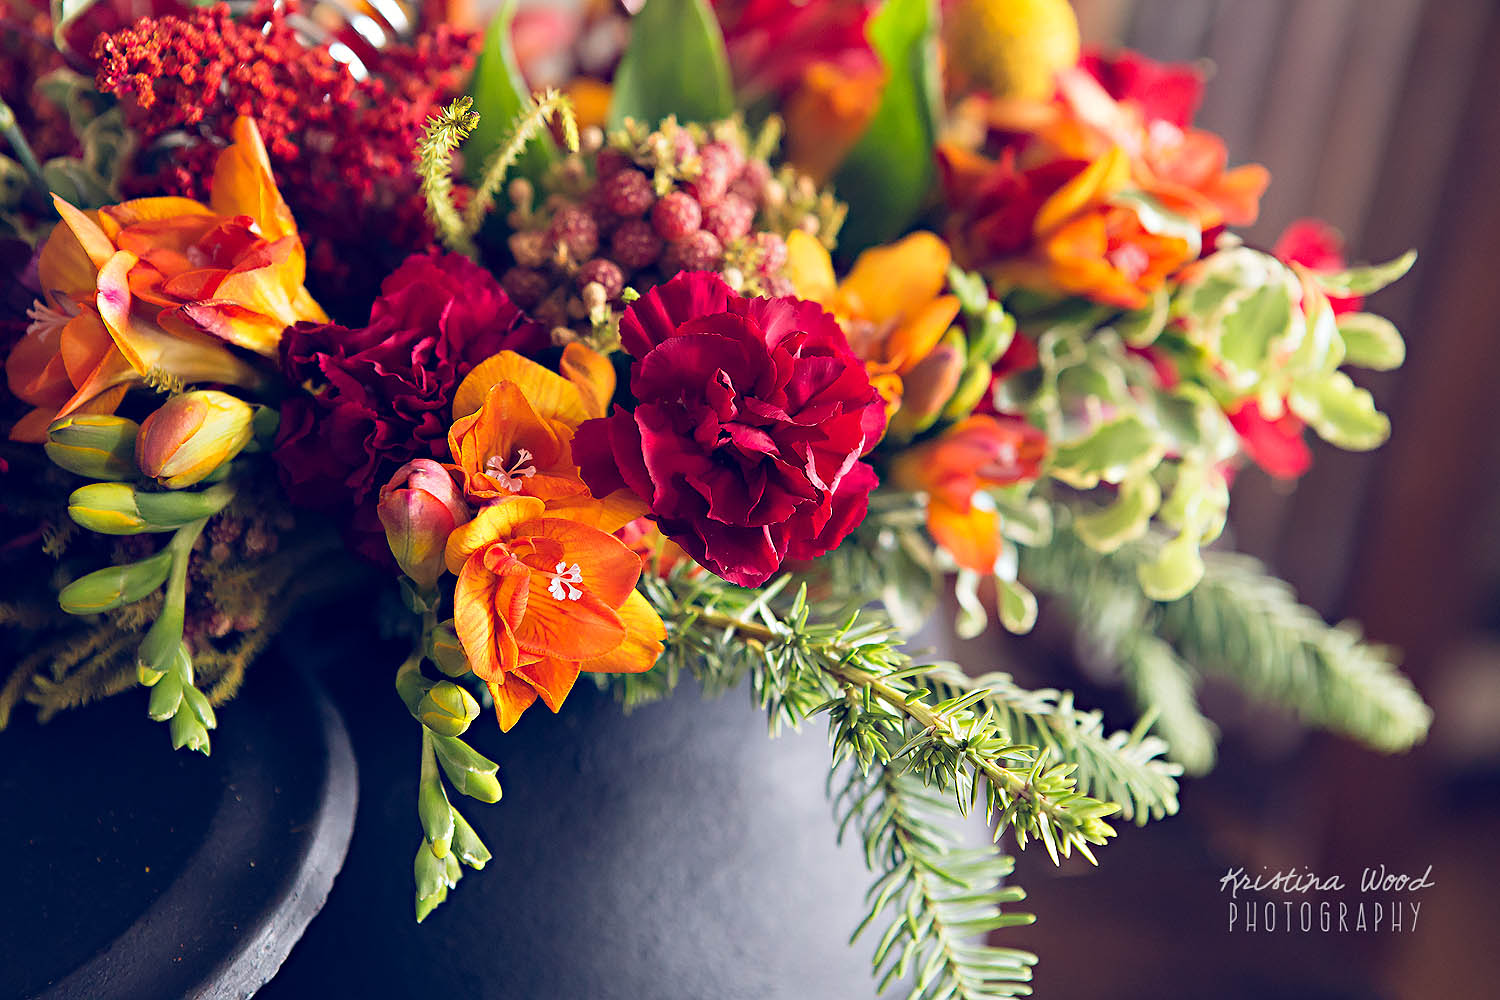 flower arrangement closeup